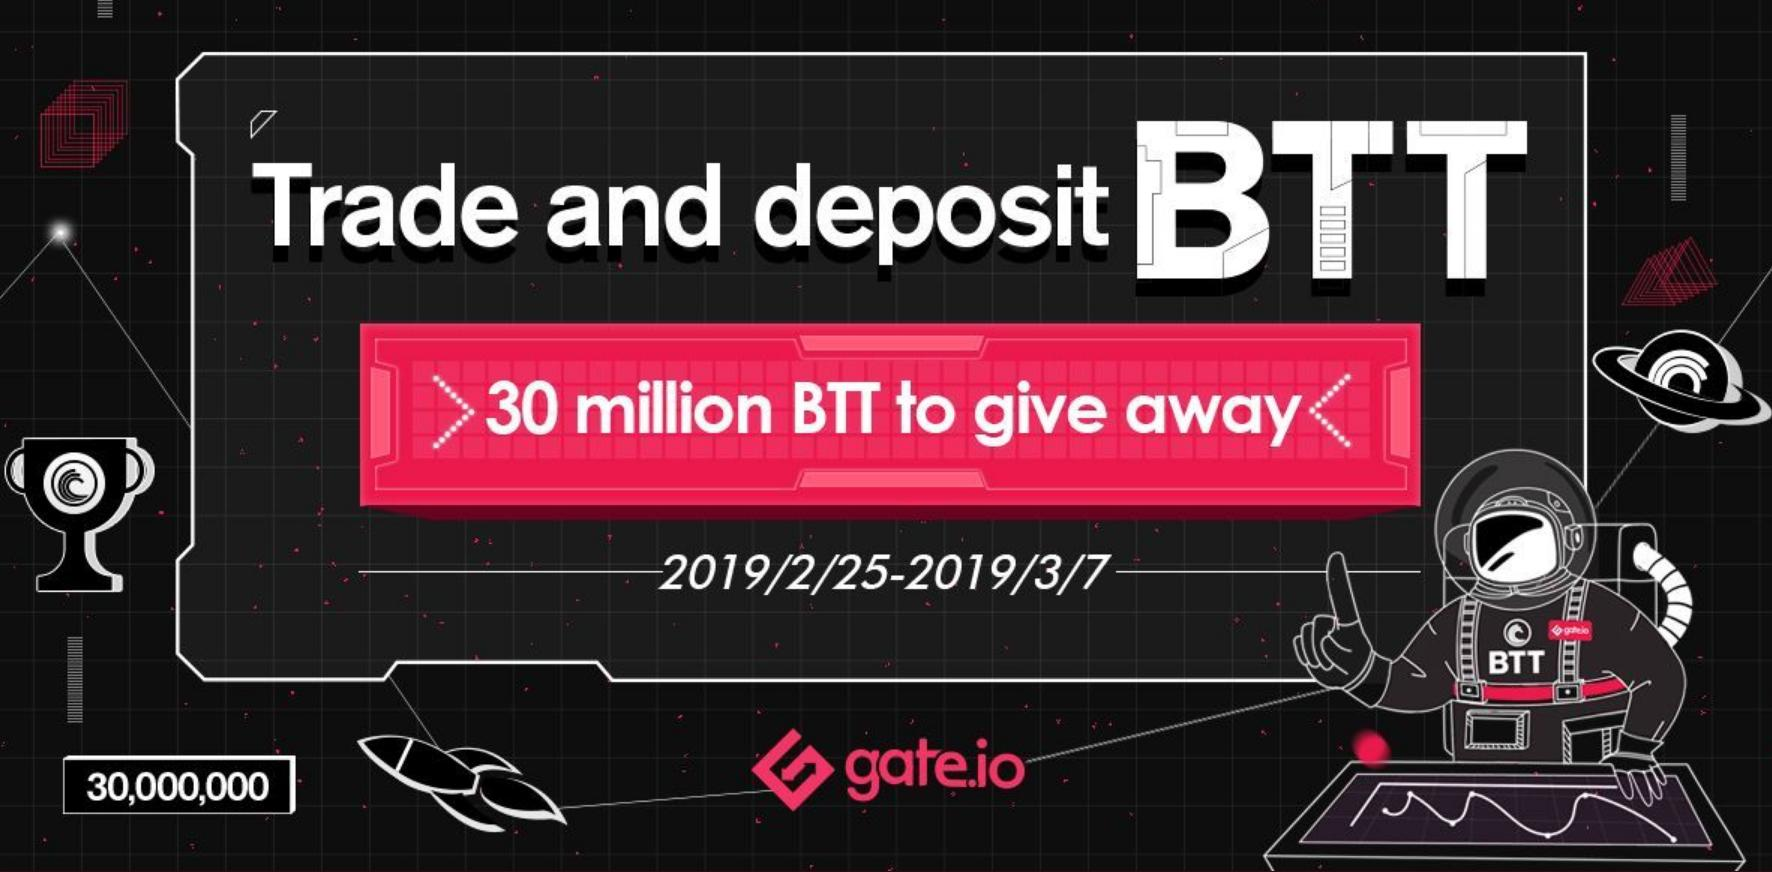 Another Bittorrent trading competition on Gate